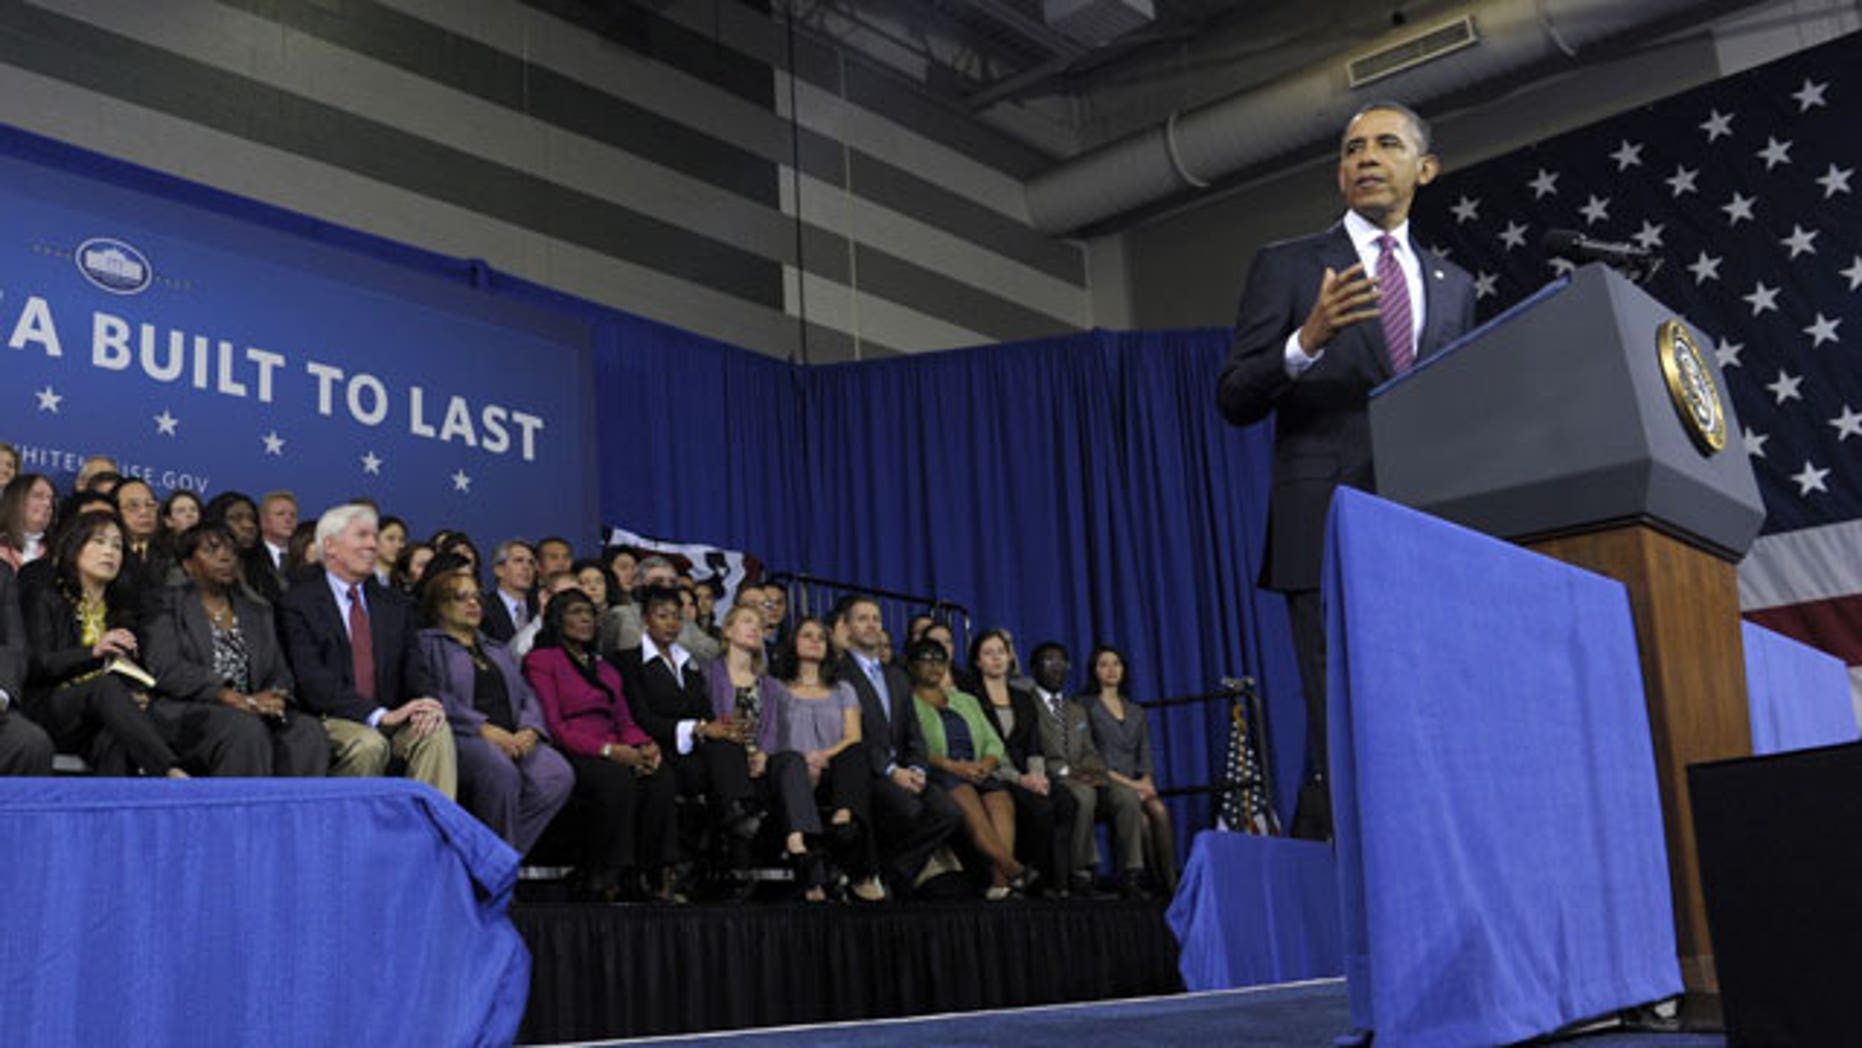 Feb. 1, 2012: President Barack Obama speaks at the James Lee Community Center in Falls Church, Va. Obama outlined a proposal he proposed in his State of the Union address to allow homeowners with privately held mortgages to take advantage of record low rates, for an annual savings of about $3,000 for the average borrower.